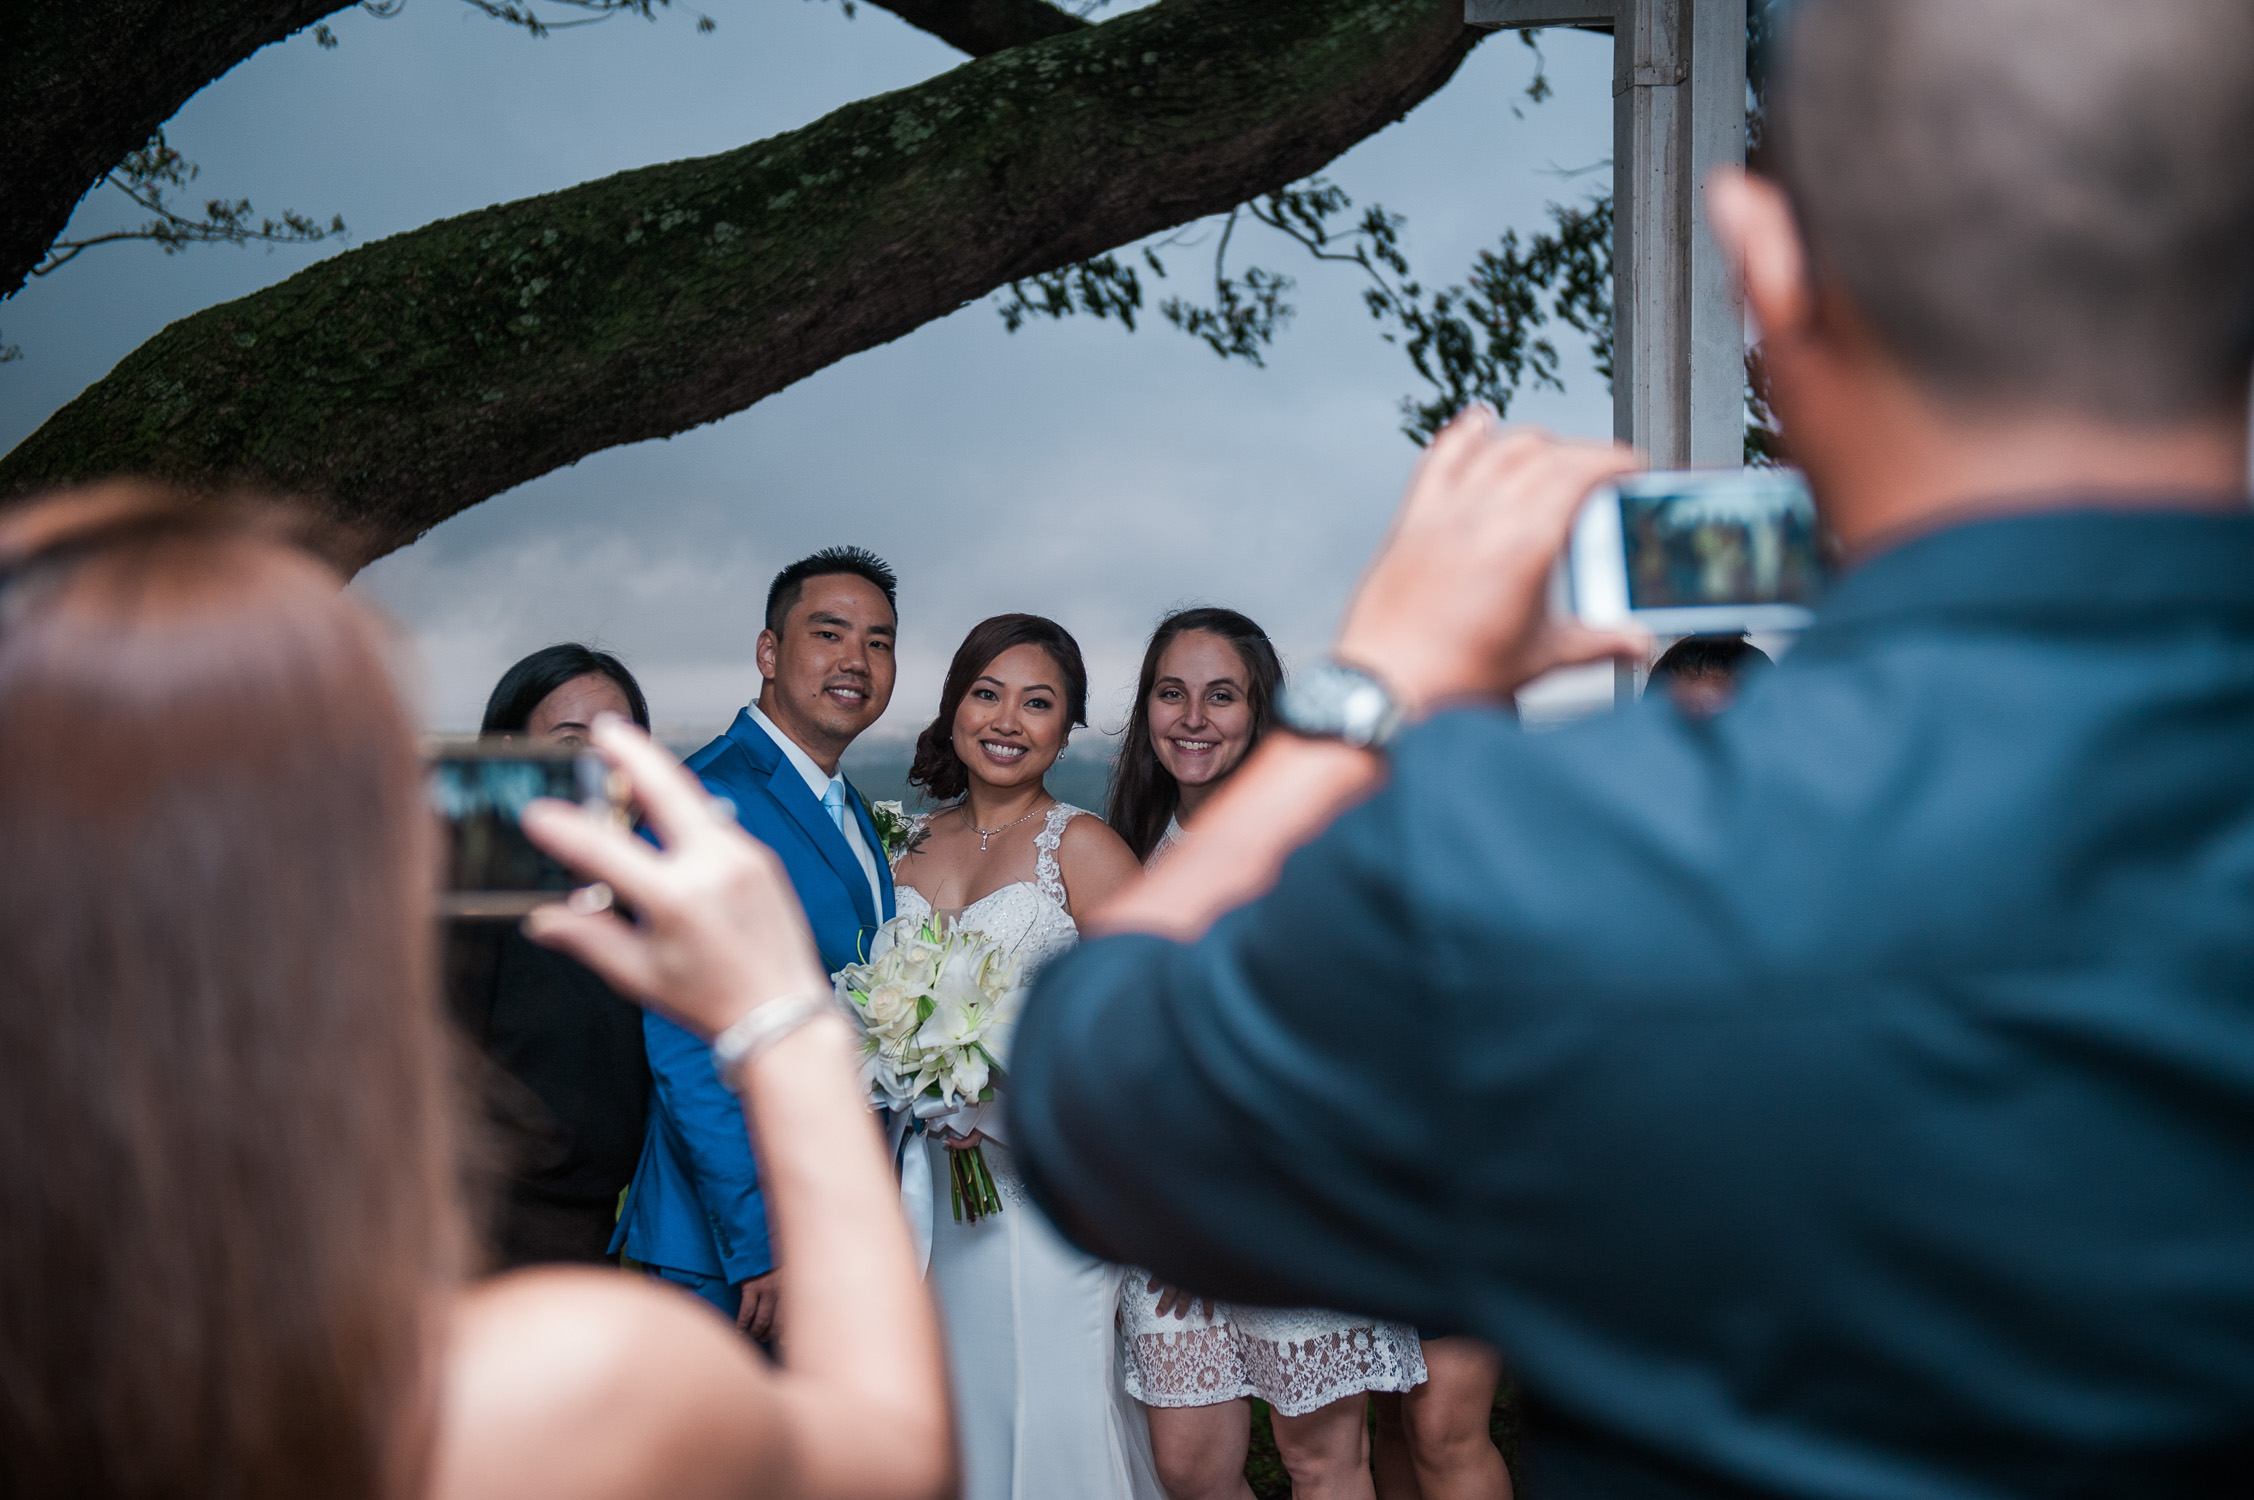 Bridal party taking photos with guests